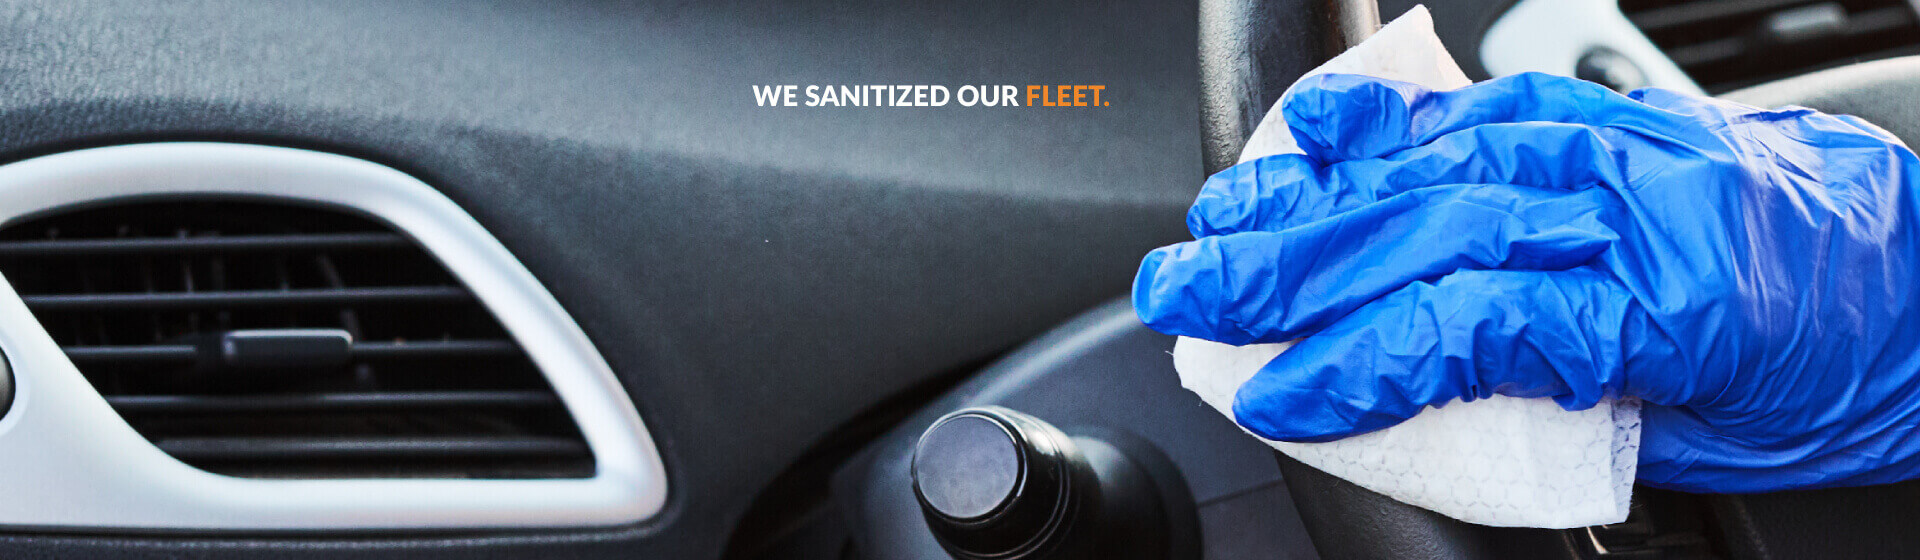 We sanitized our fleet